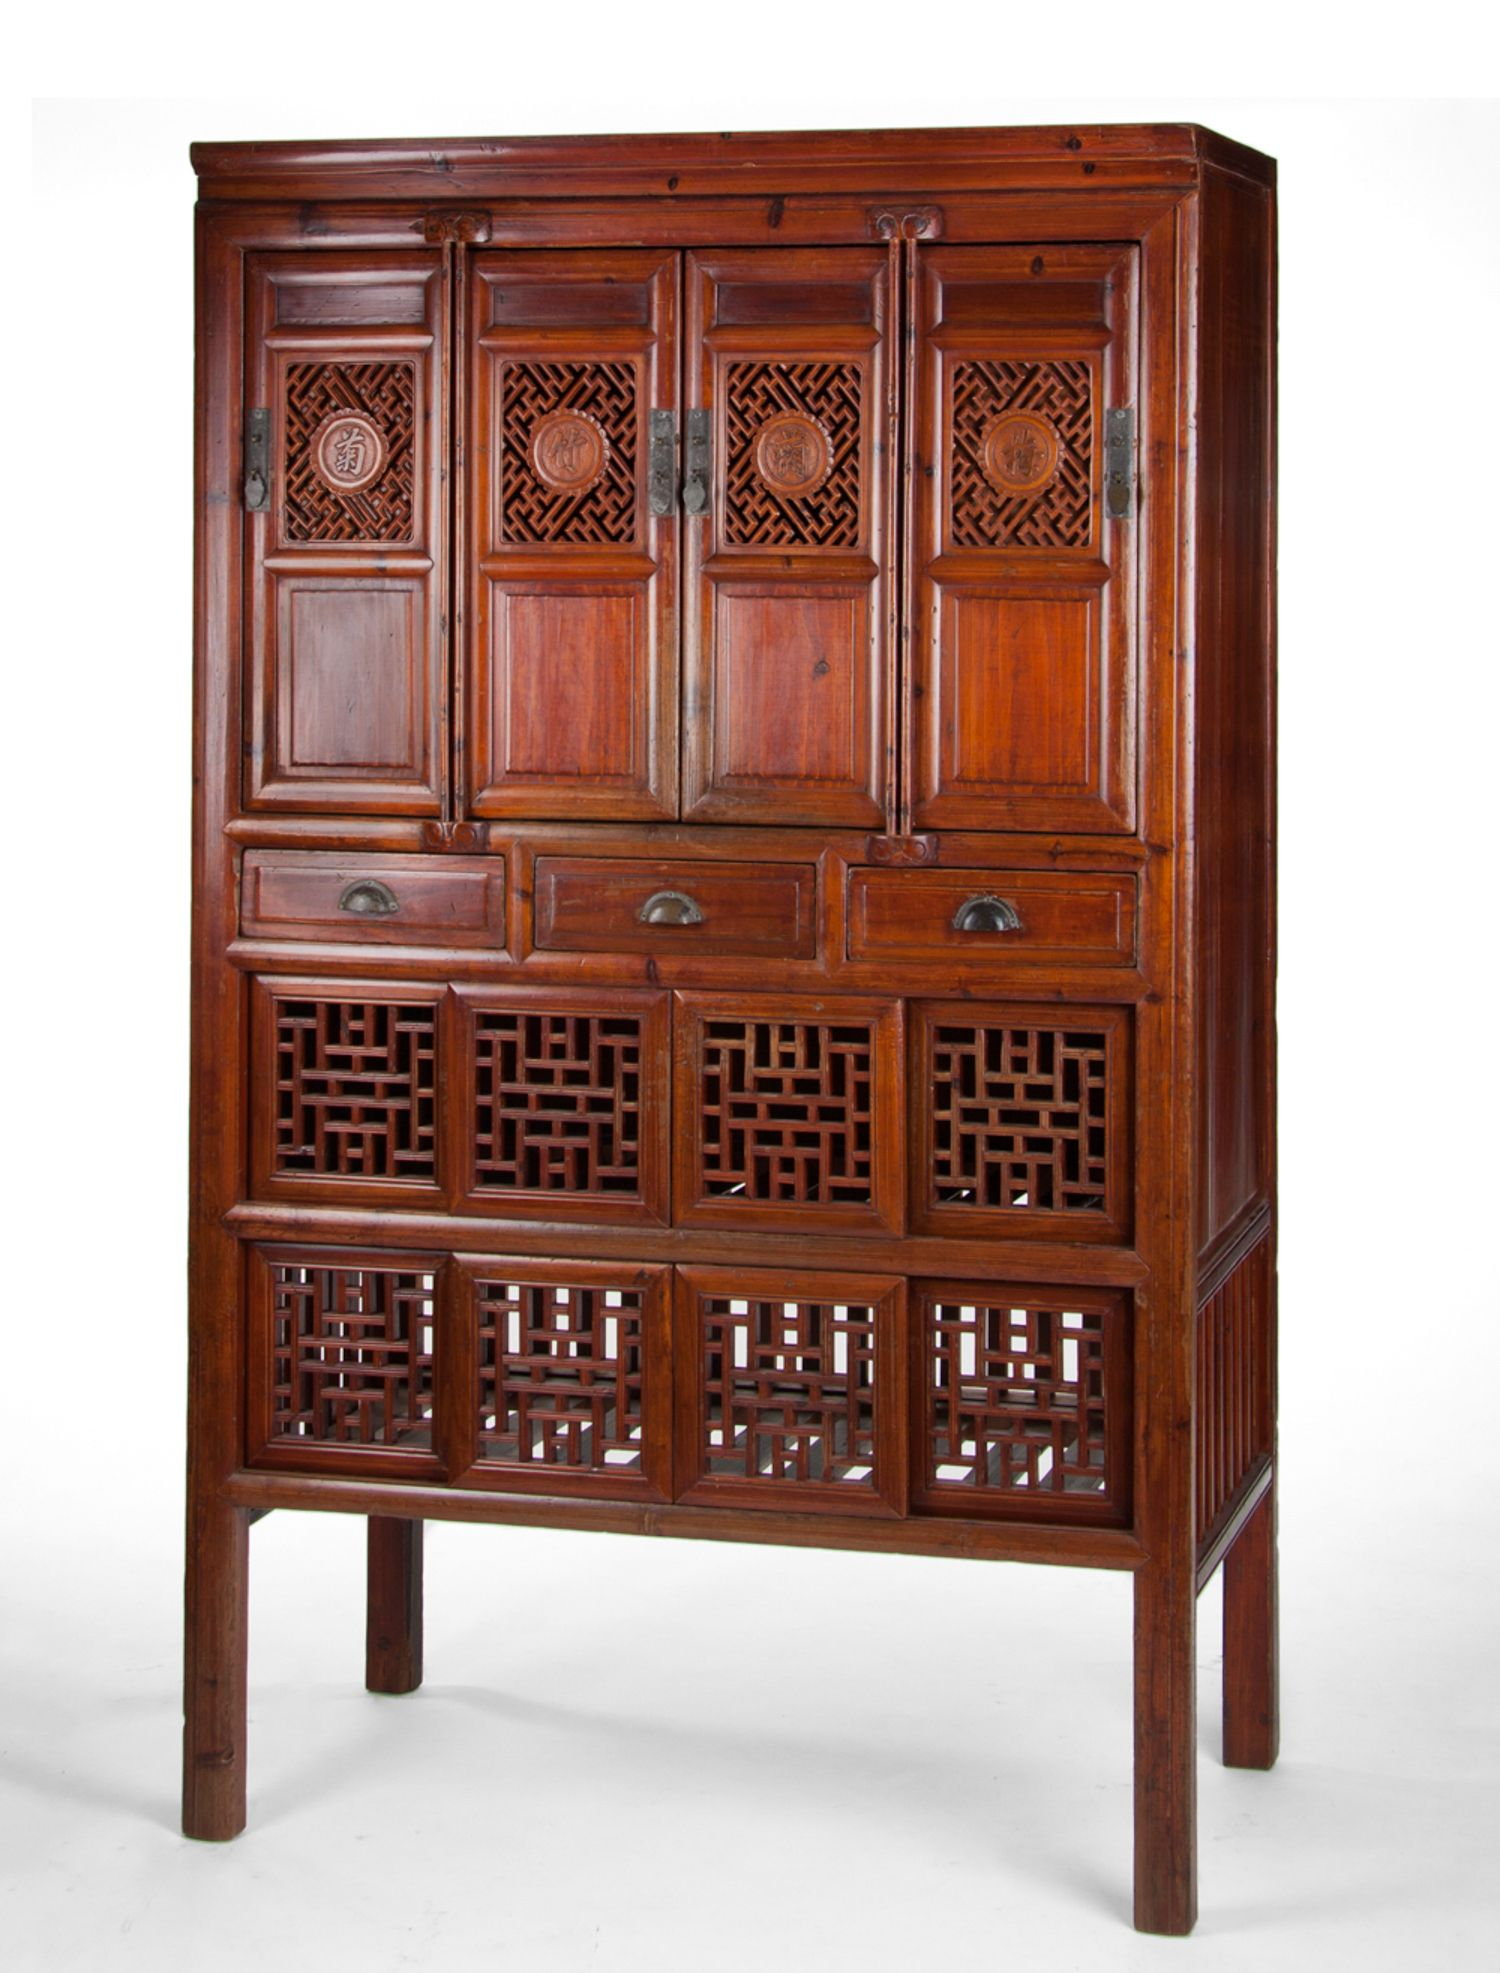 Early 20th Century Kitchen Cabinet Kitchen Cabinets Were An Important Part Of The Traditional Chinese Home Dishes Prepared By The Family Cook Would Be Placed